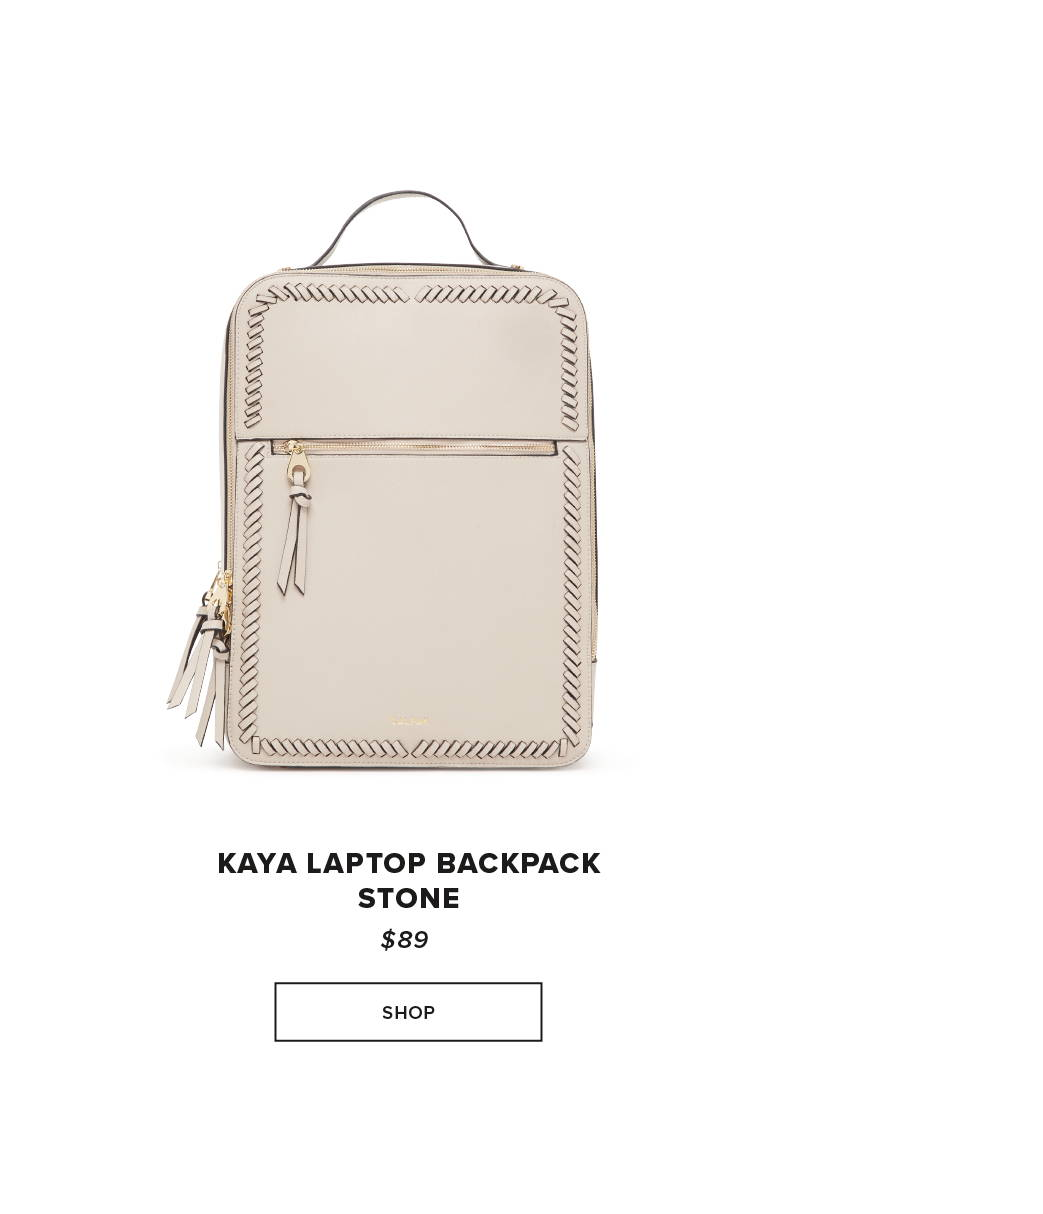 CALPAK KAYA LAPTOP BACKPACK - STONE